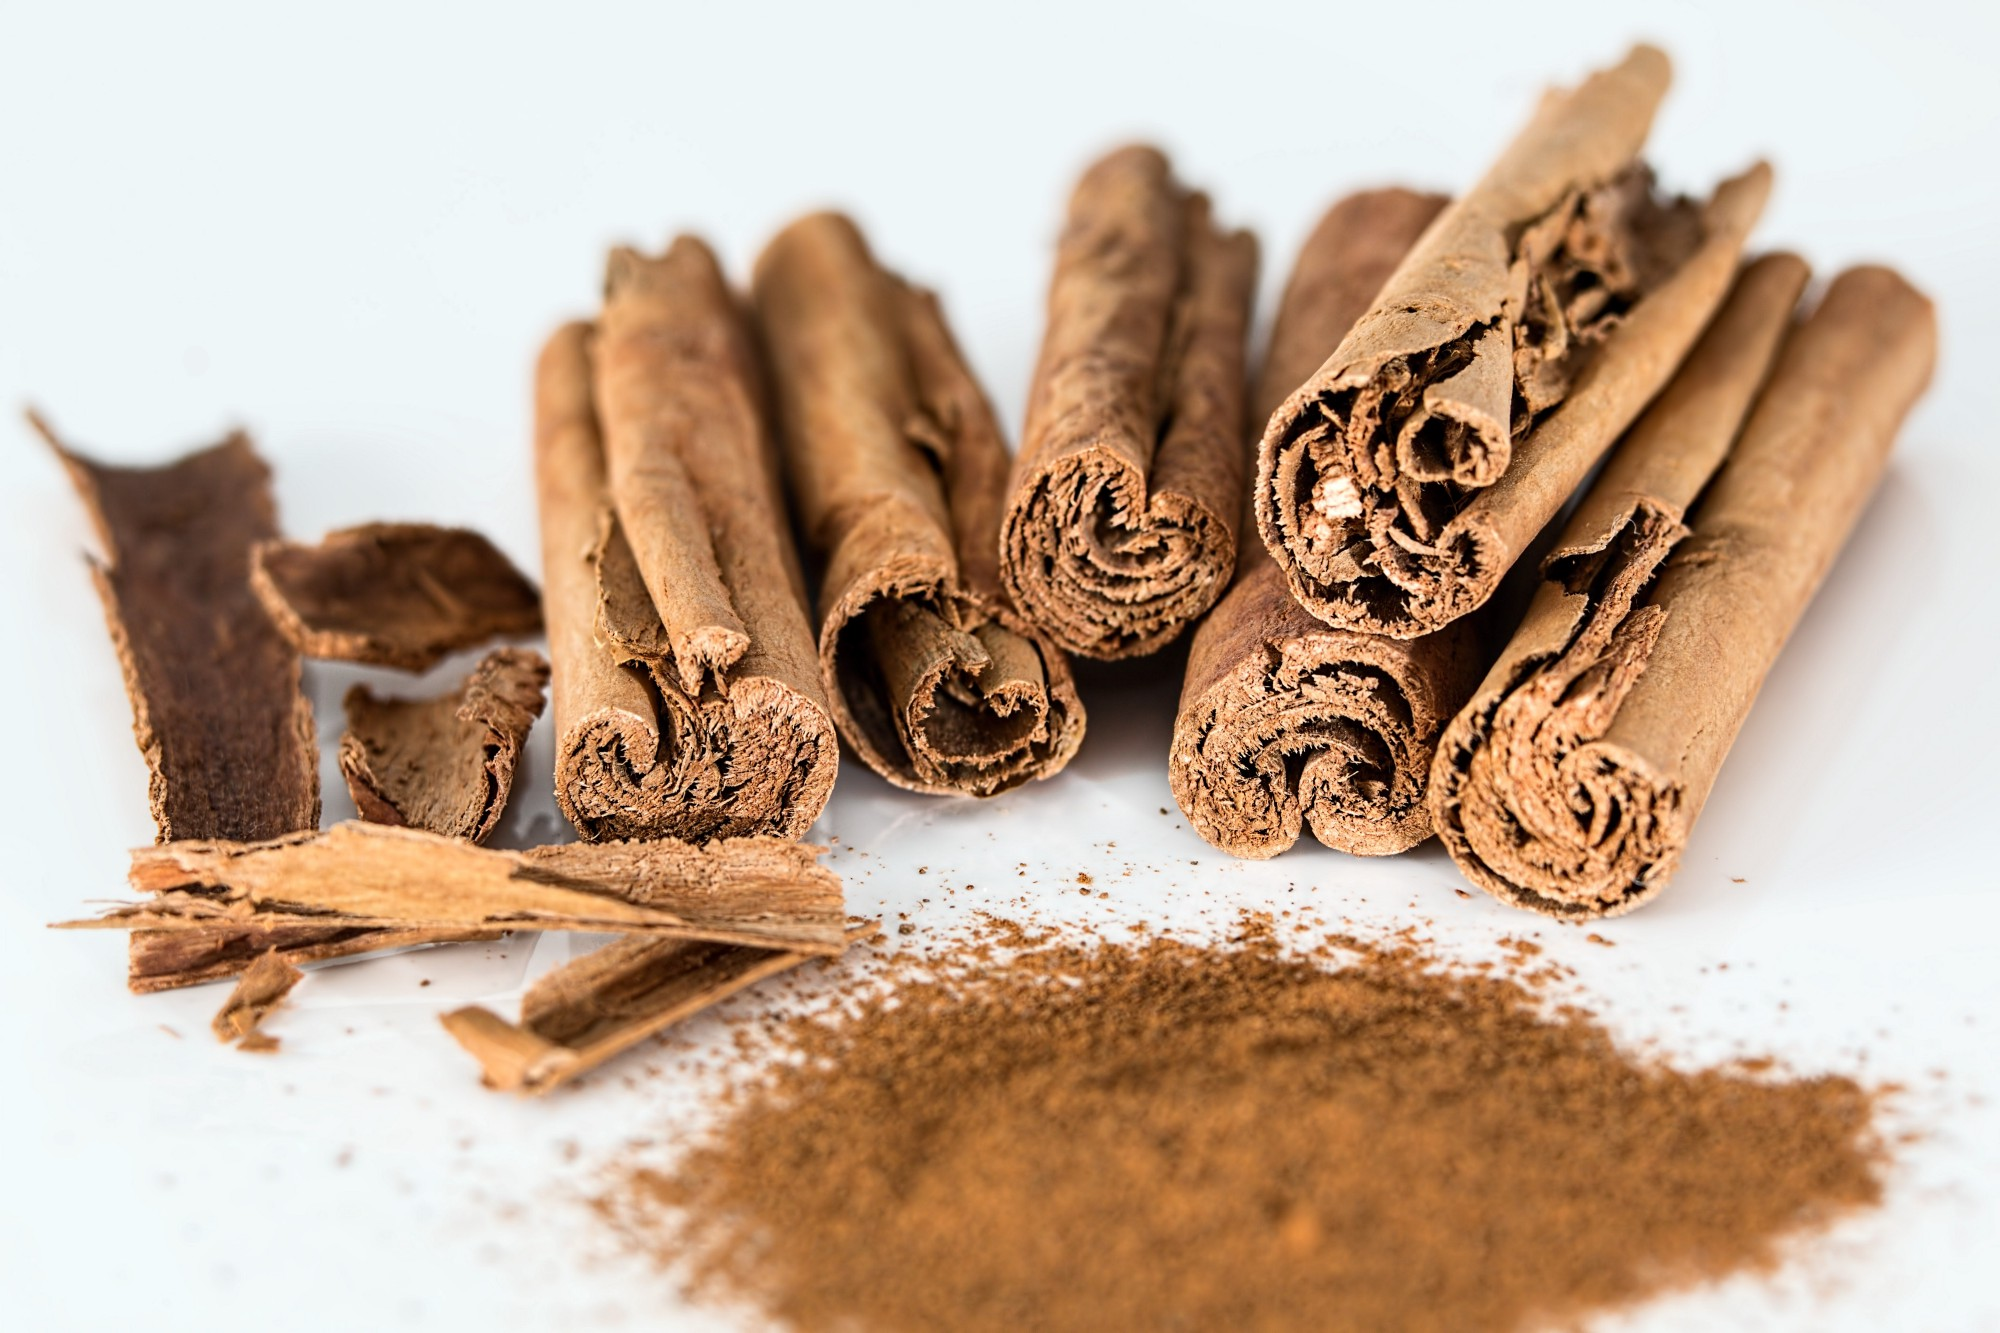 Spice up your fat loss with cinnamon this weekend